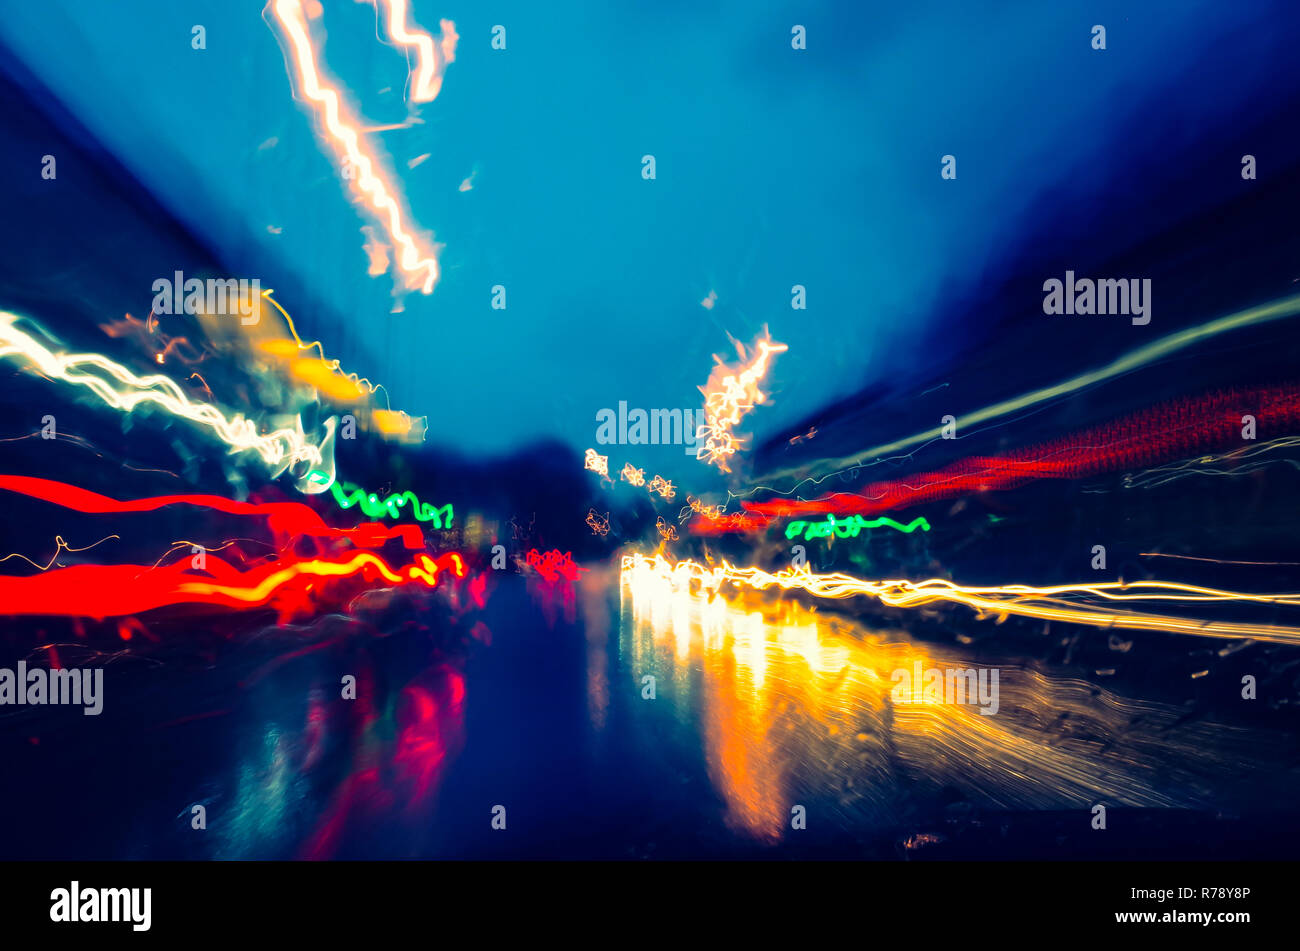 Light trails on a rainy evening in the city Stock Photo